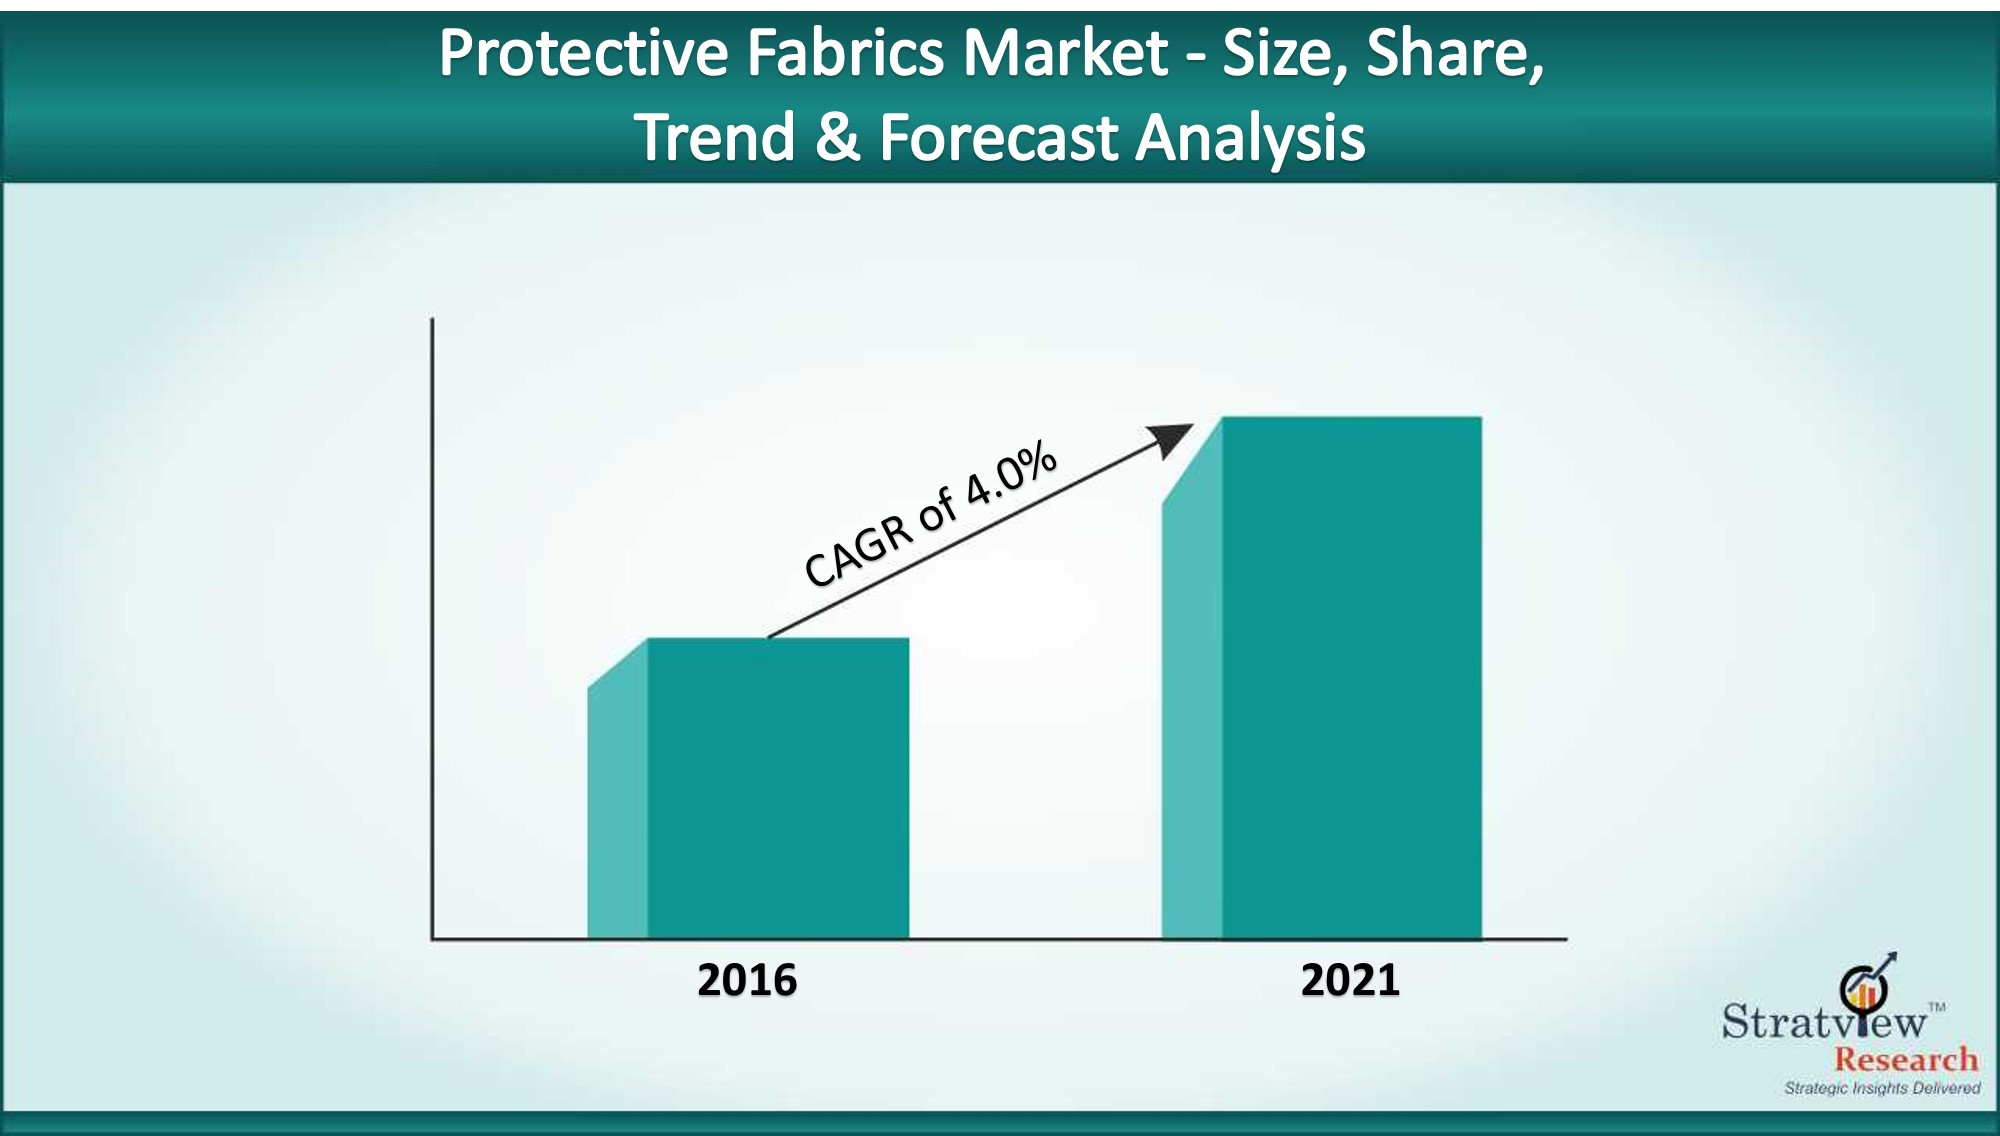 The changing dynamics in Protective Fabrics Market with covid-19 impact assessment